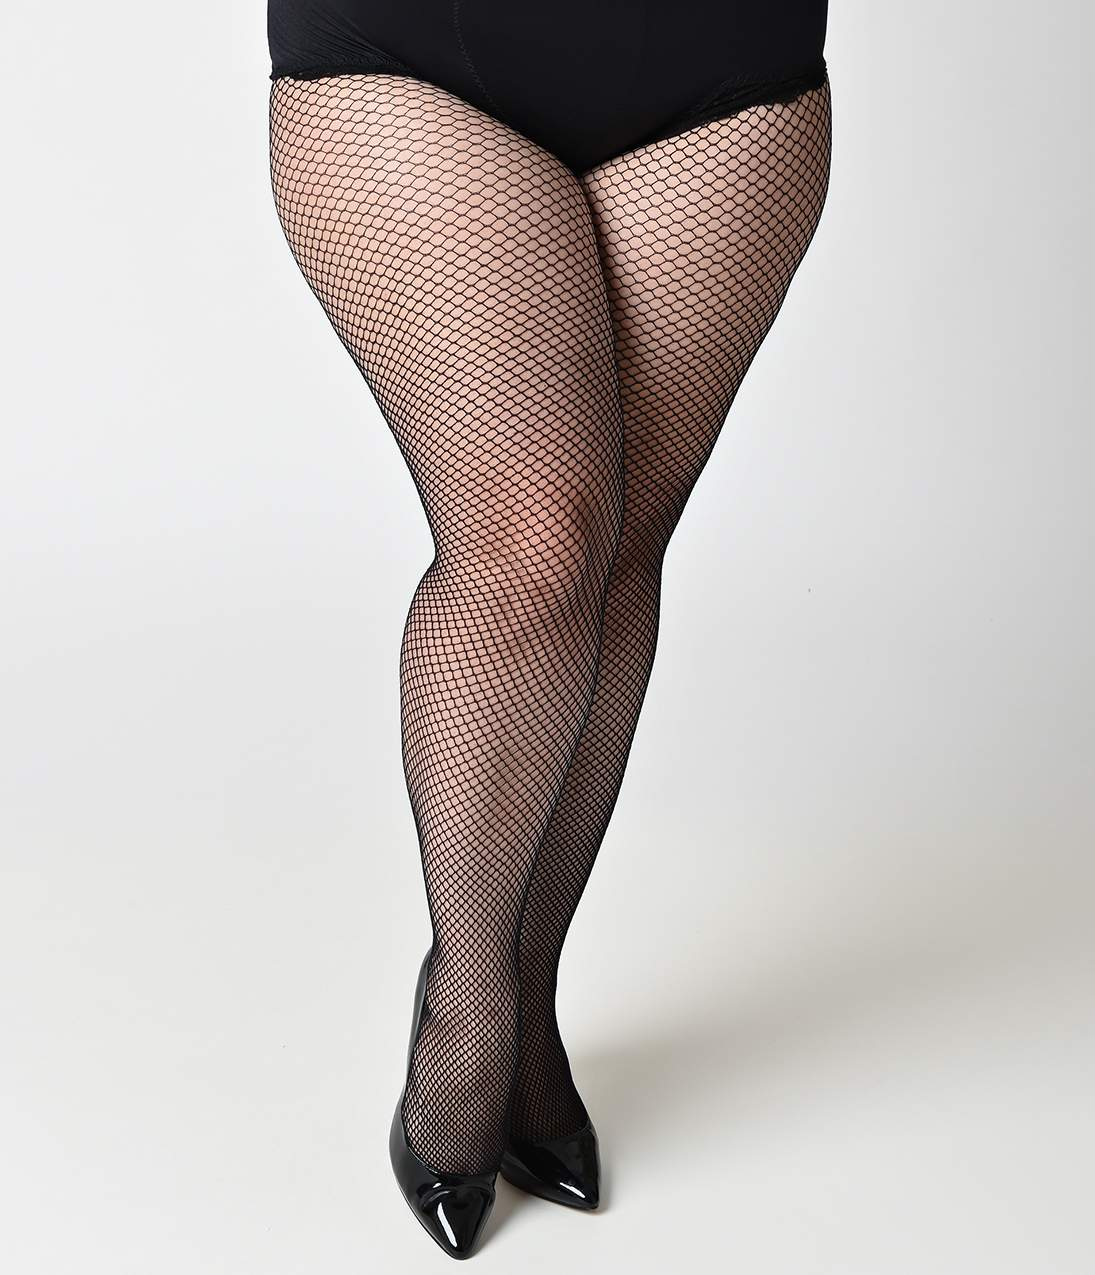 1960s Tights, Stockings, Panty Hose, Knee High Socks Plus Size Black Fishnet Tights $10.00 AT vintagedancer.com